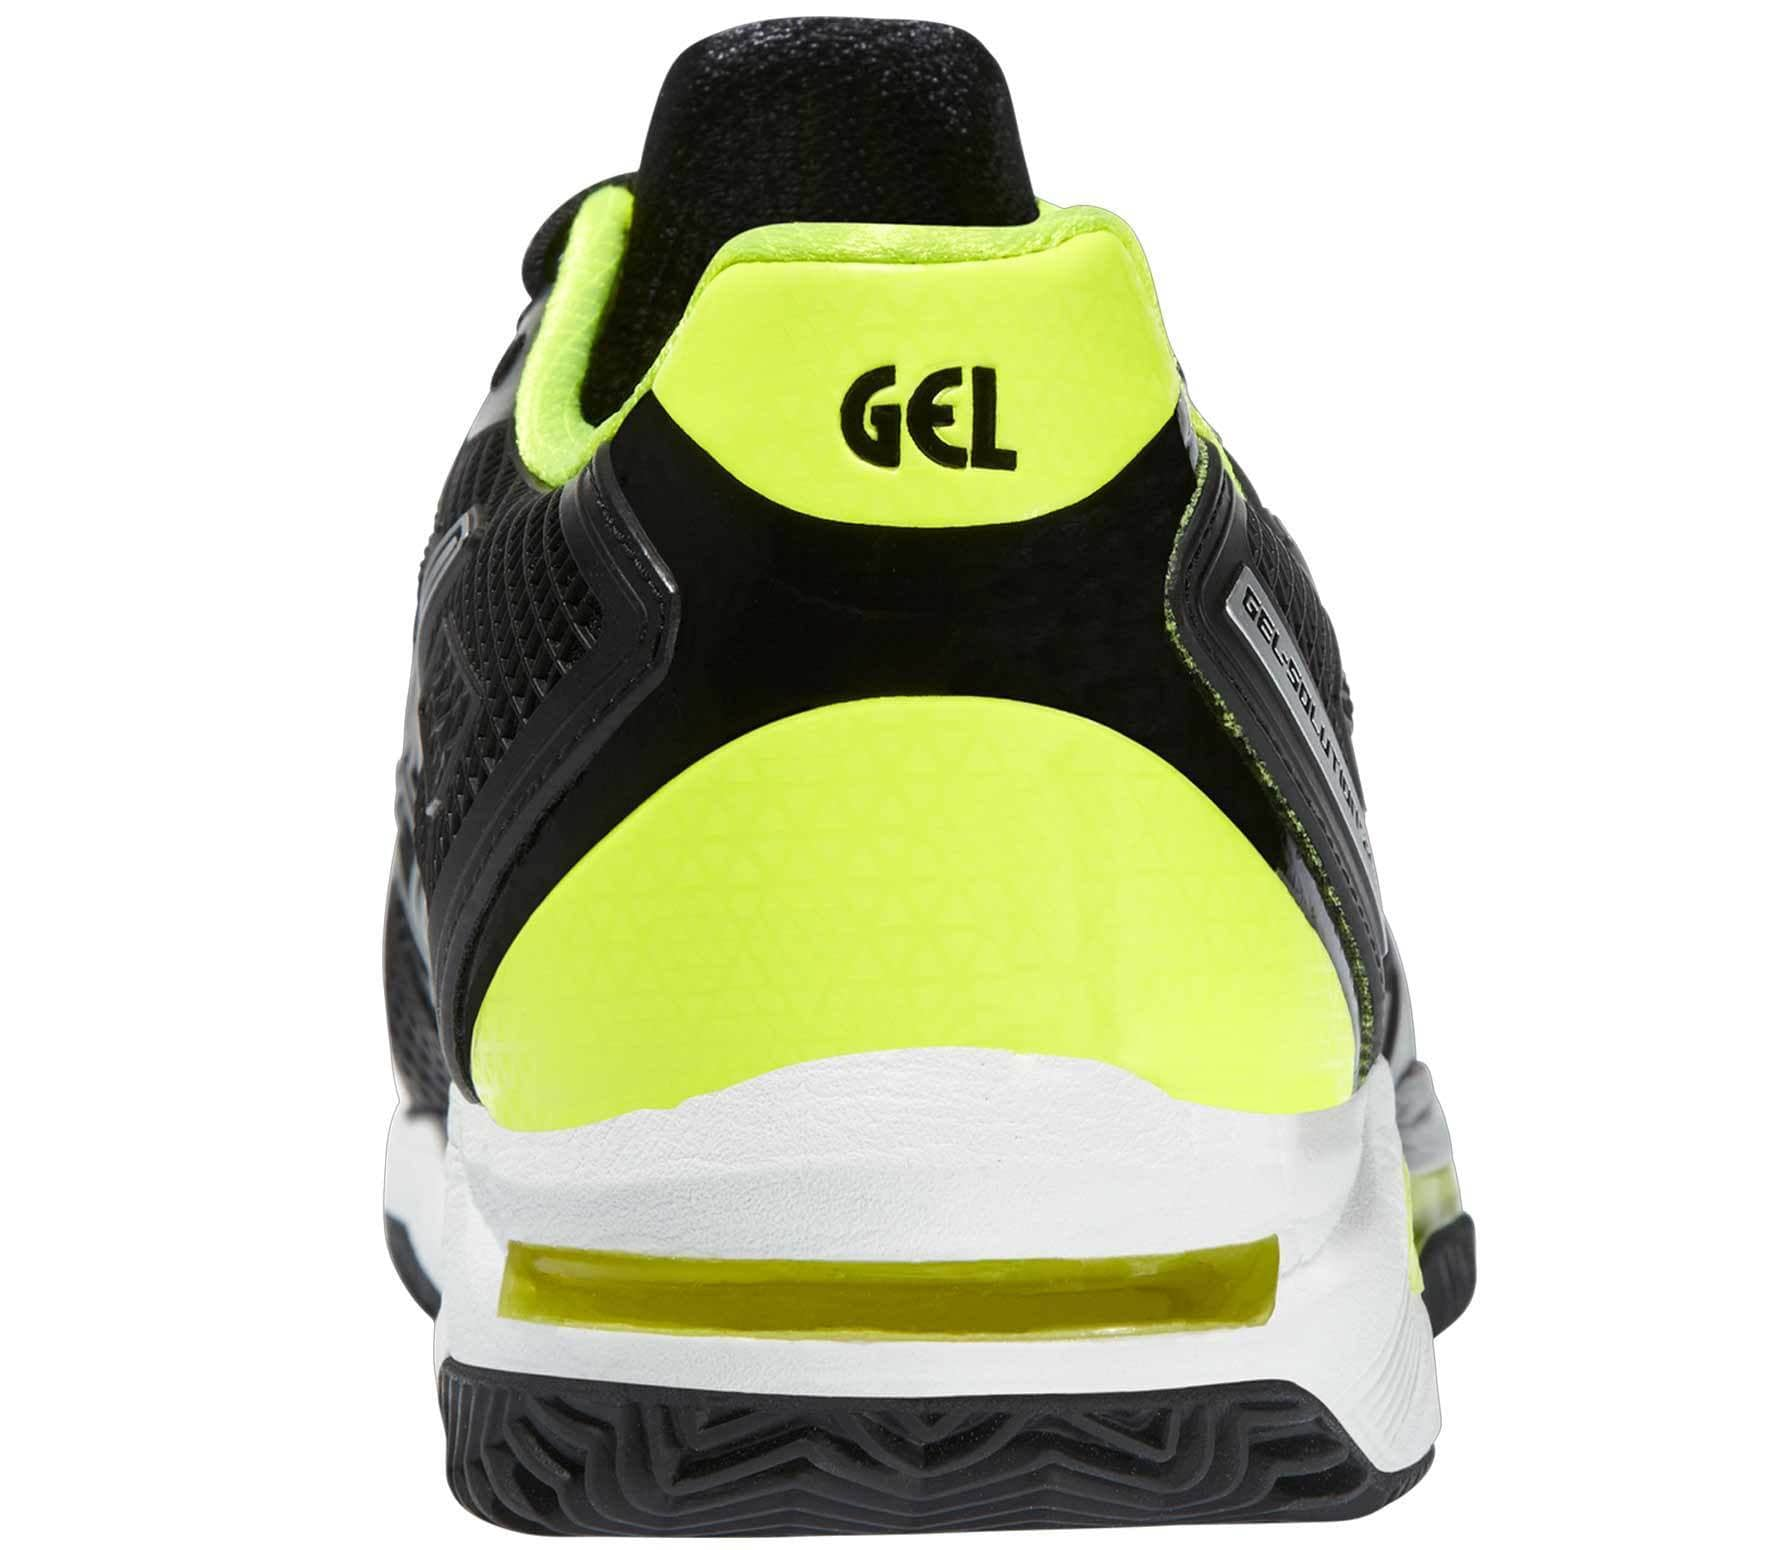 3b1666a27341 ASICS - Gel-Solution Speed 2 Clay men s tennis shoes (yellow black ...